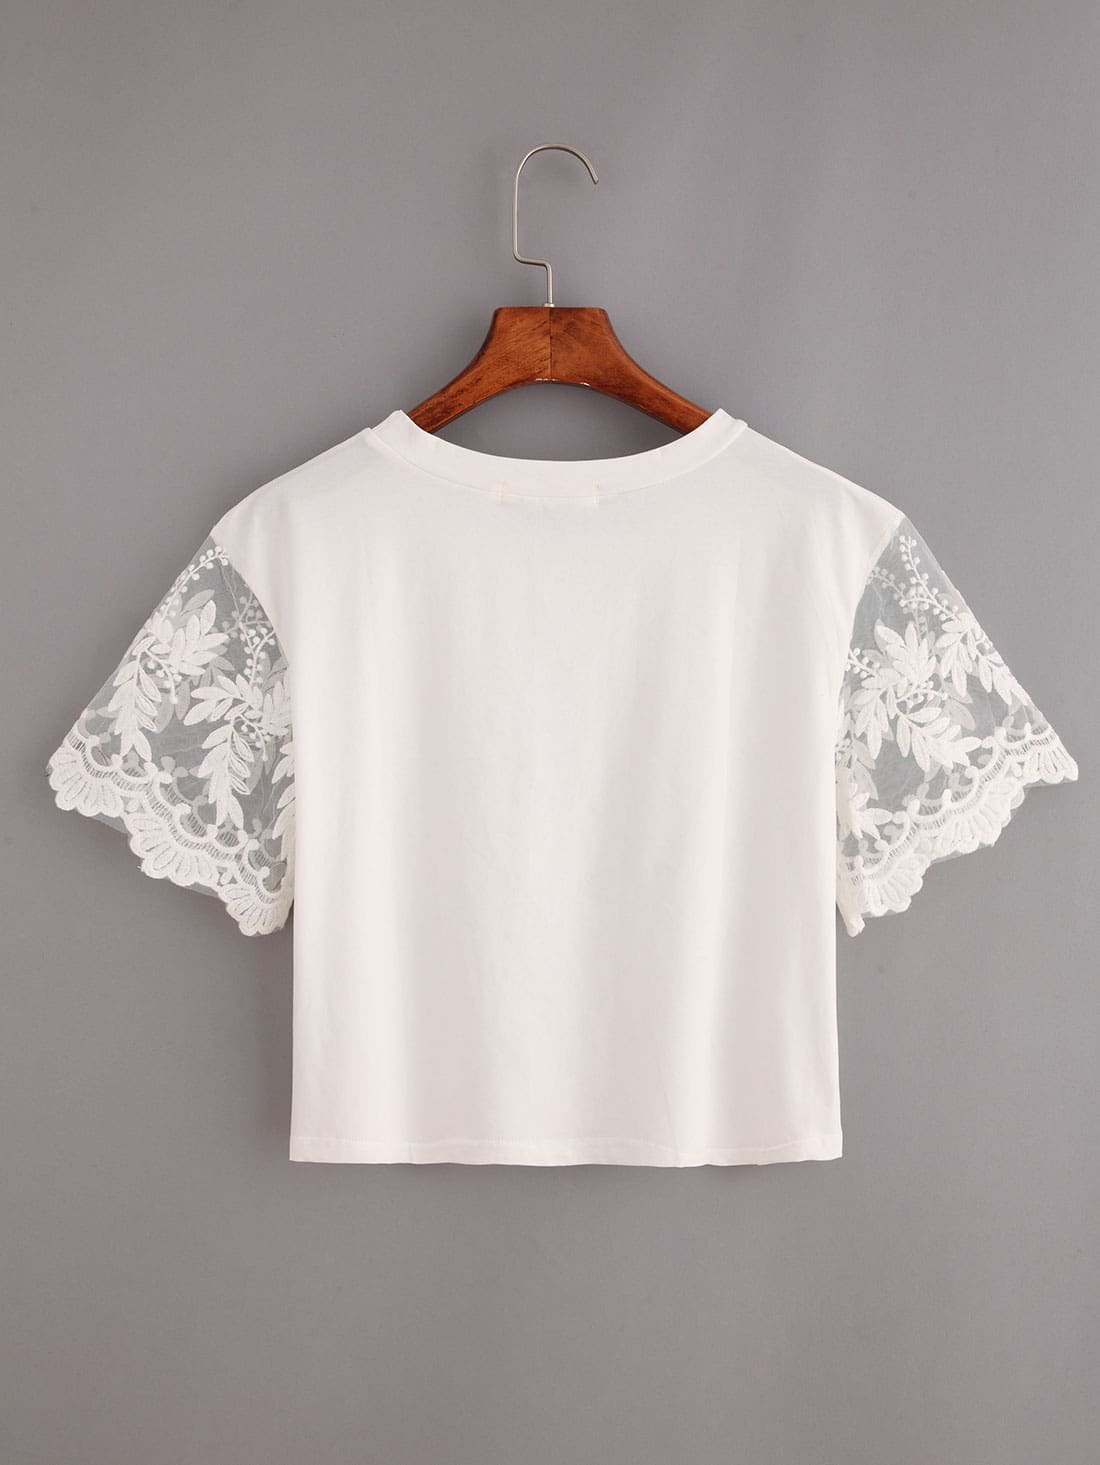 Embroidered mesh sleeve lion print crop t shirt white for Embroidered mesh t shirt